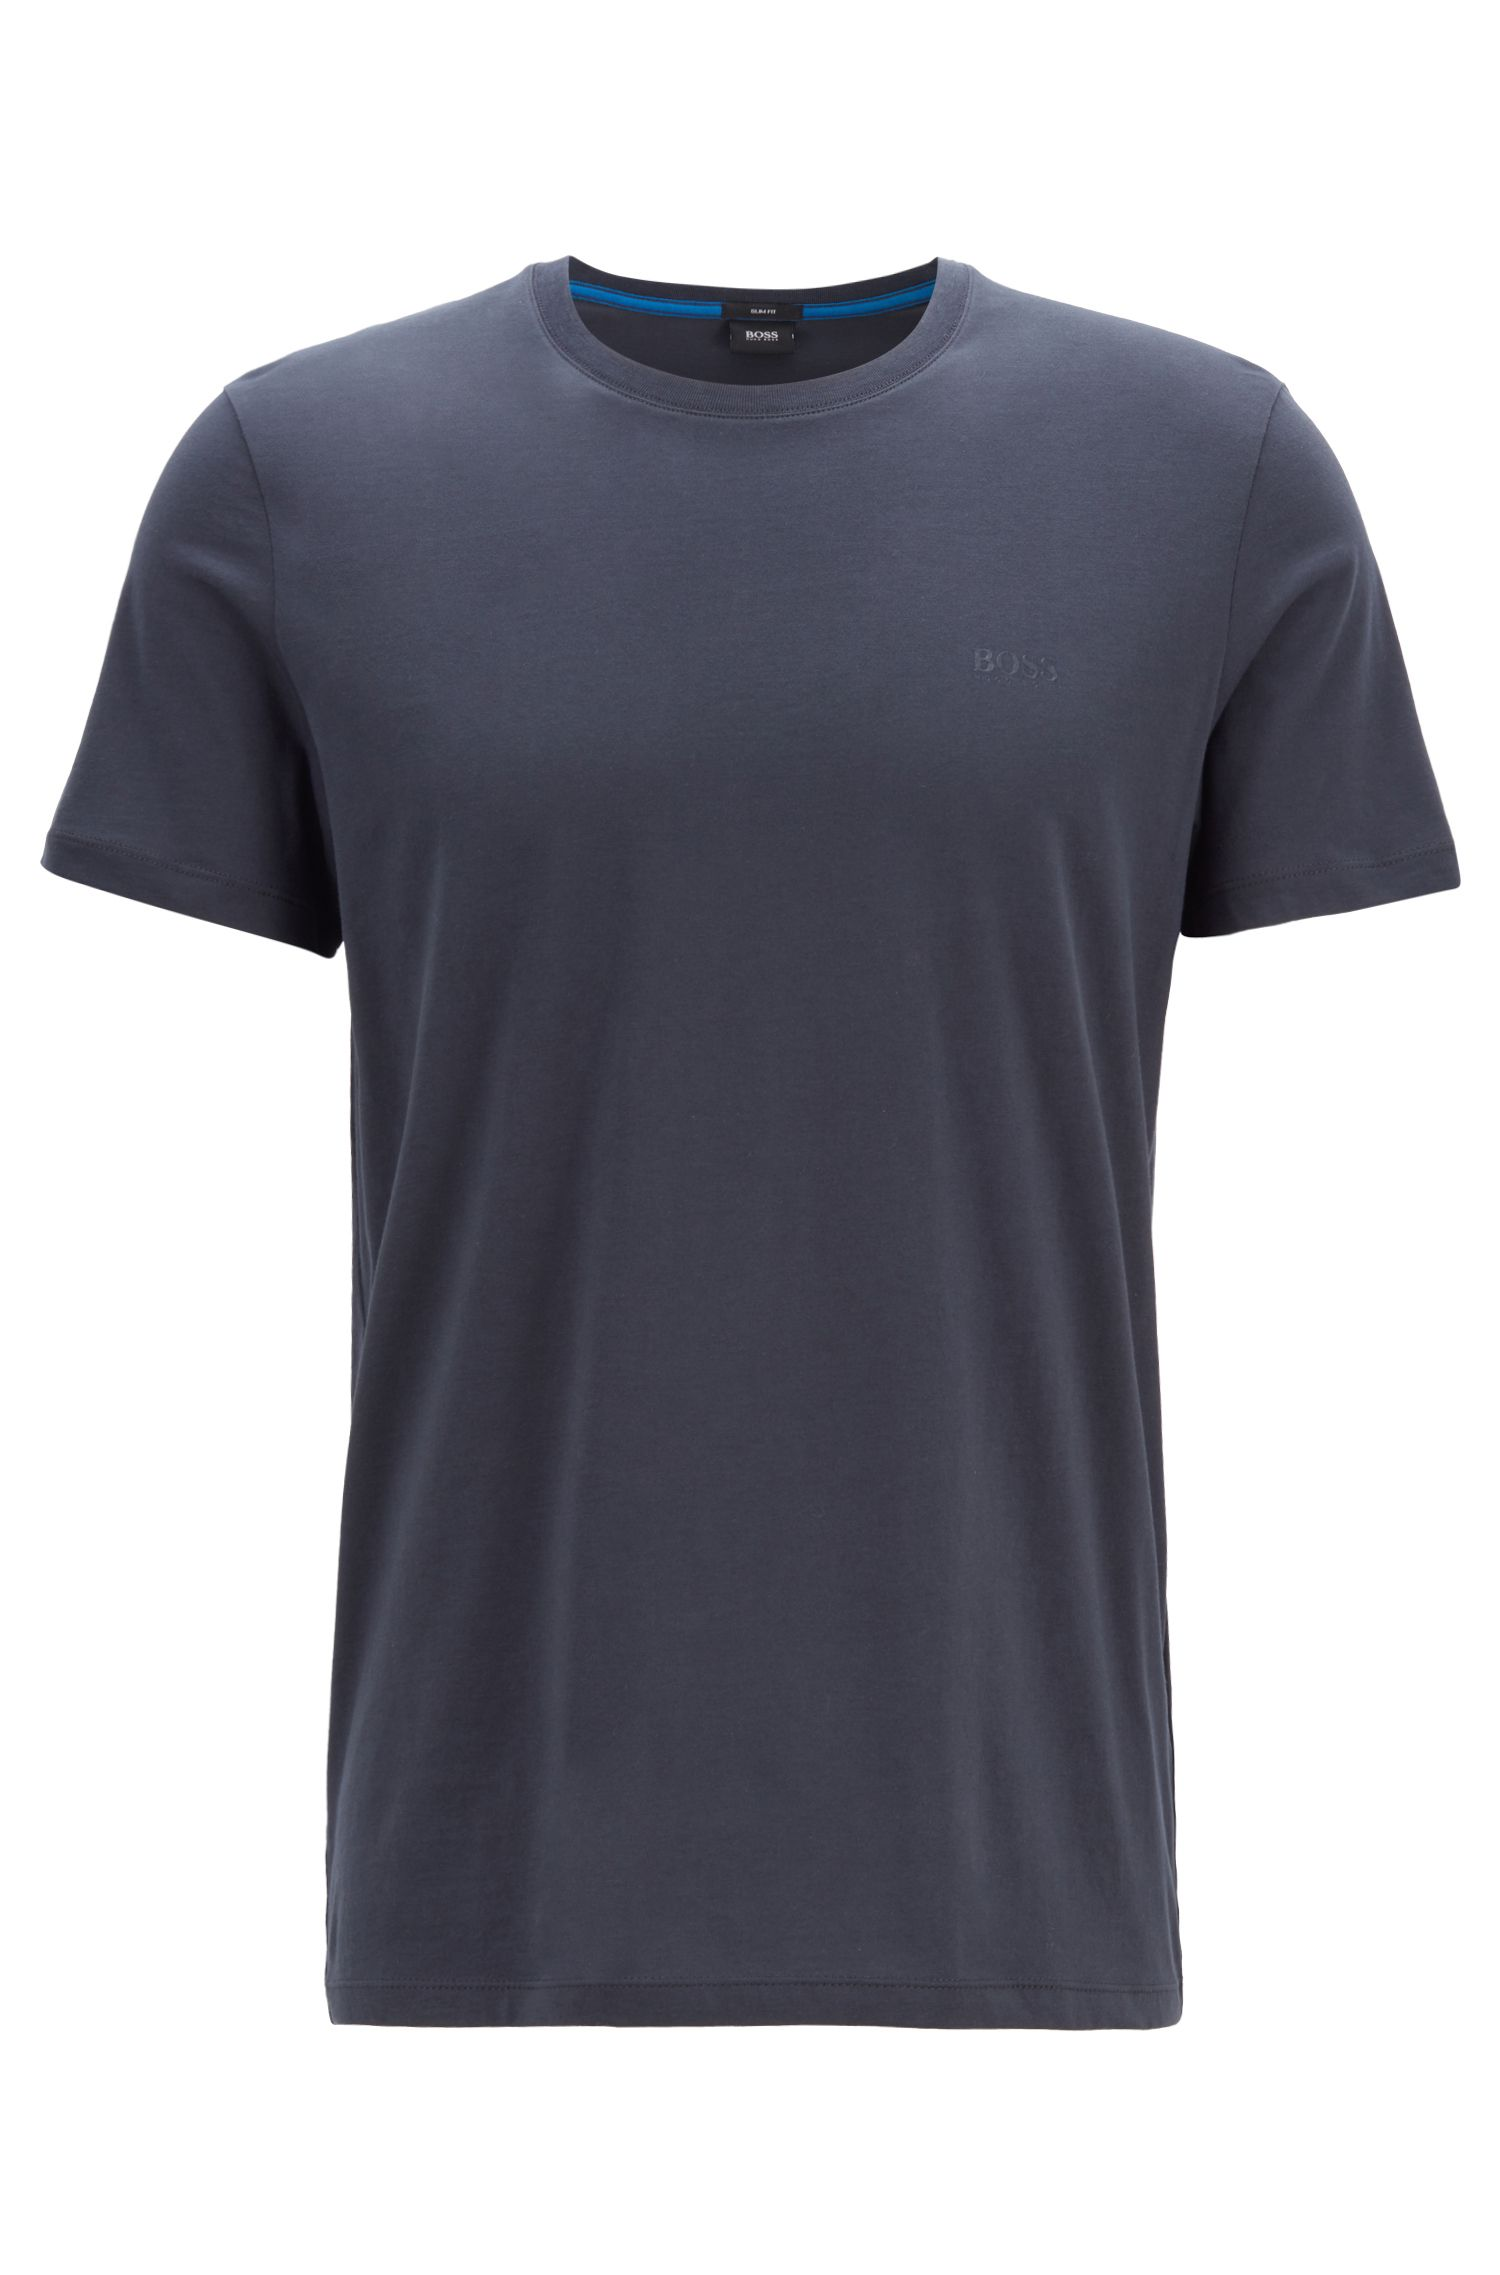 T-shirt slim fit in morbidissimo jersey di cotone, Blu scuro